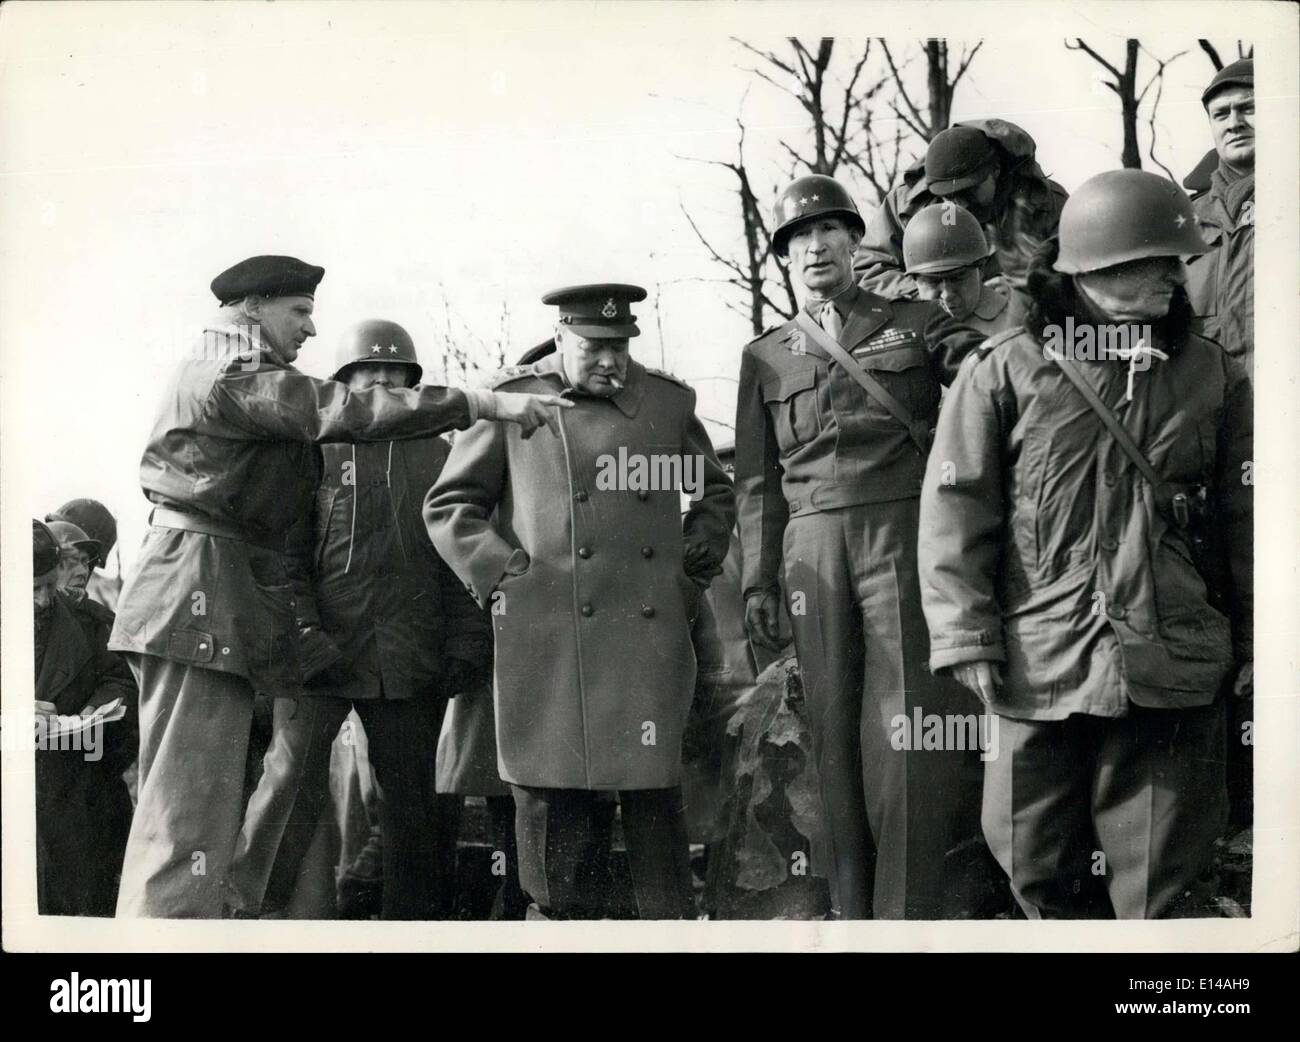 Apr. 17, 2012 - Mr. Churchill in Germany visit to 9th Army Front : The Prime Minister paid a visit to the Siegfried Line and saw the famous Citadel of Julich. Picture shows ''Monty'' points out where the flame - throwers were in action. Next to him is Mr. Churchill, Gen. Simpson, C-in-C. U.S. 9th Army and Gen Gilla, Picture taken outside the Citadel in Julich. - Stock Image